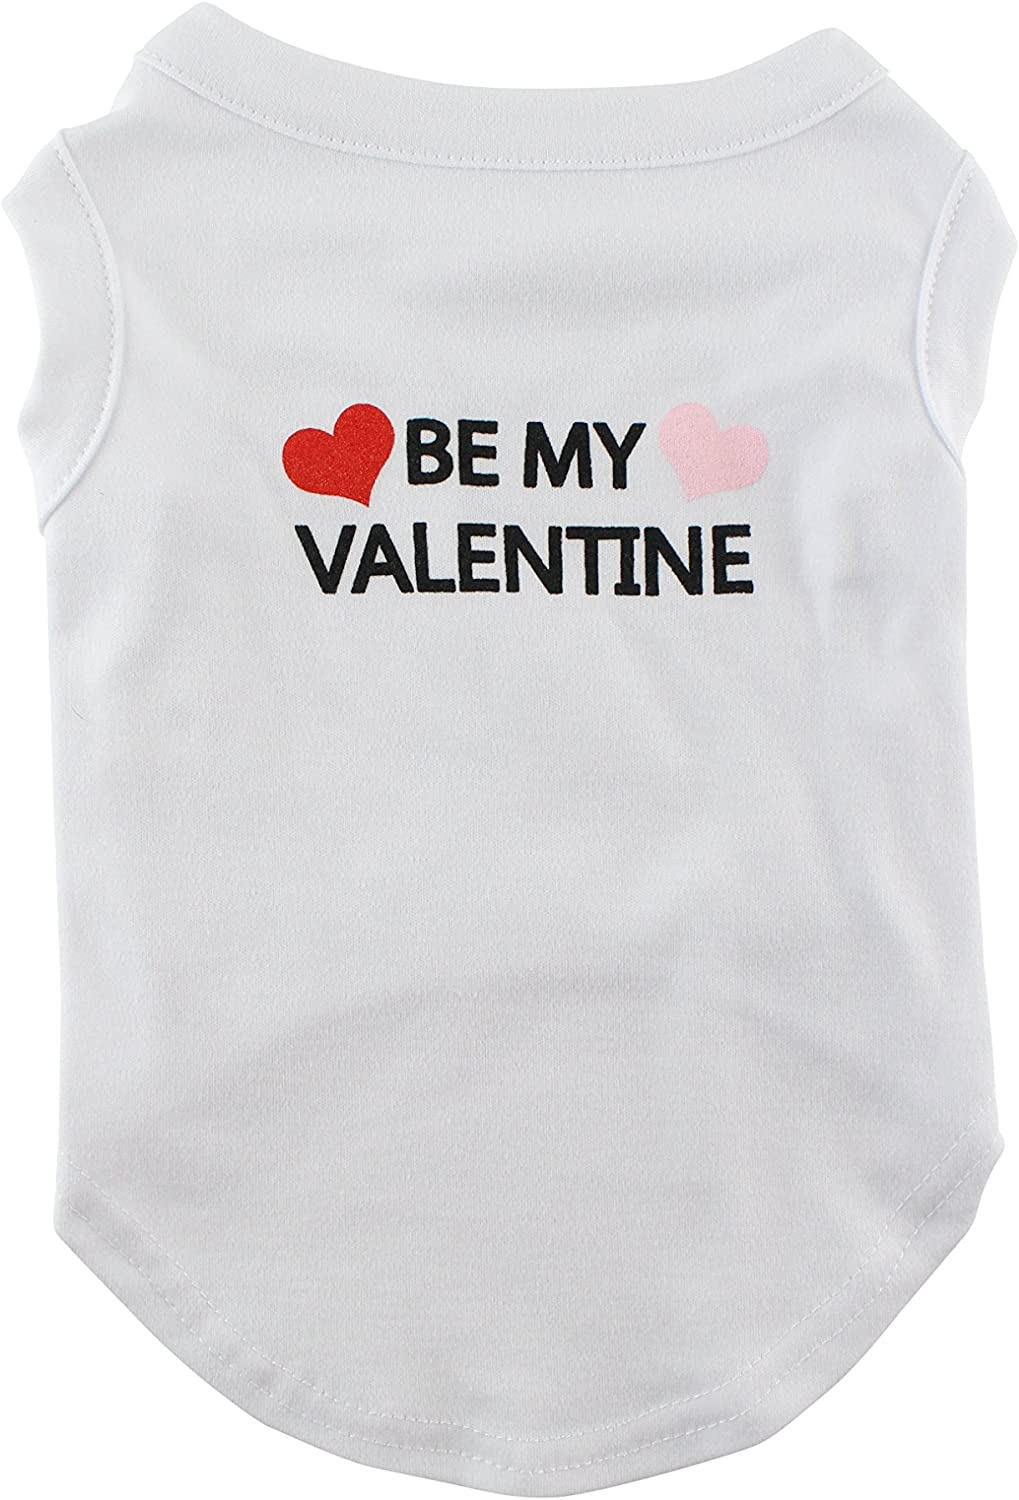 Be My Valentine Dog Shirt by Midlee (XLarge)